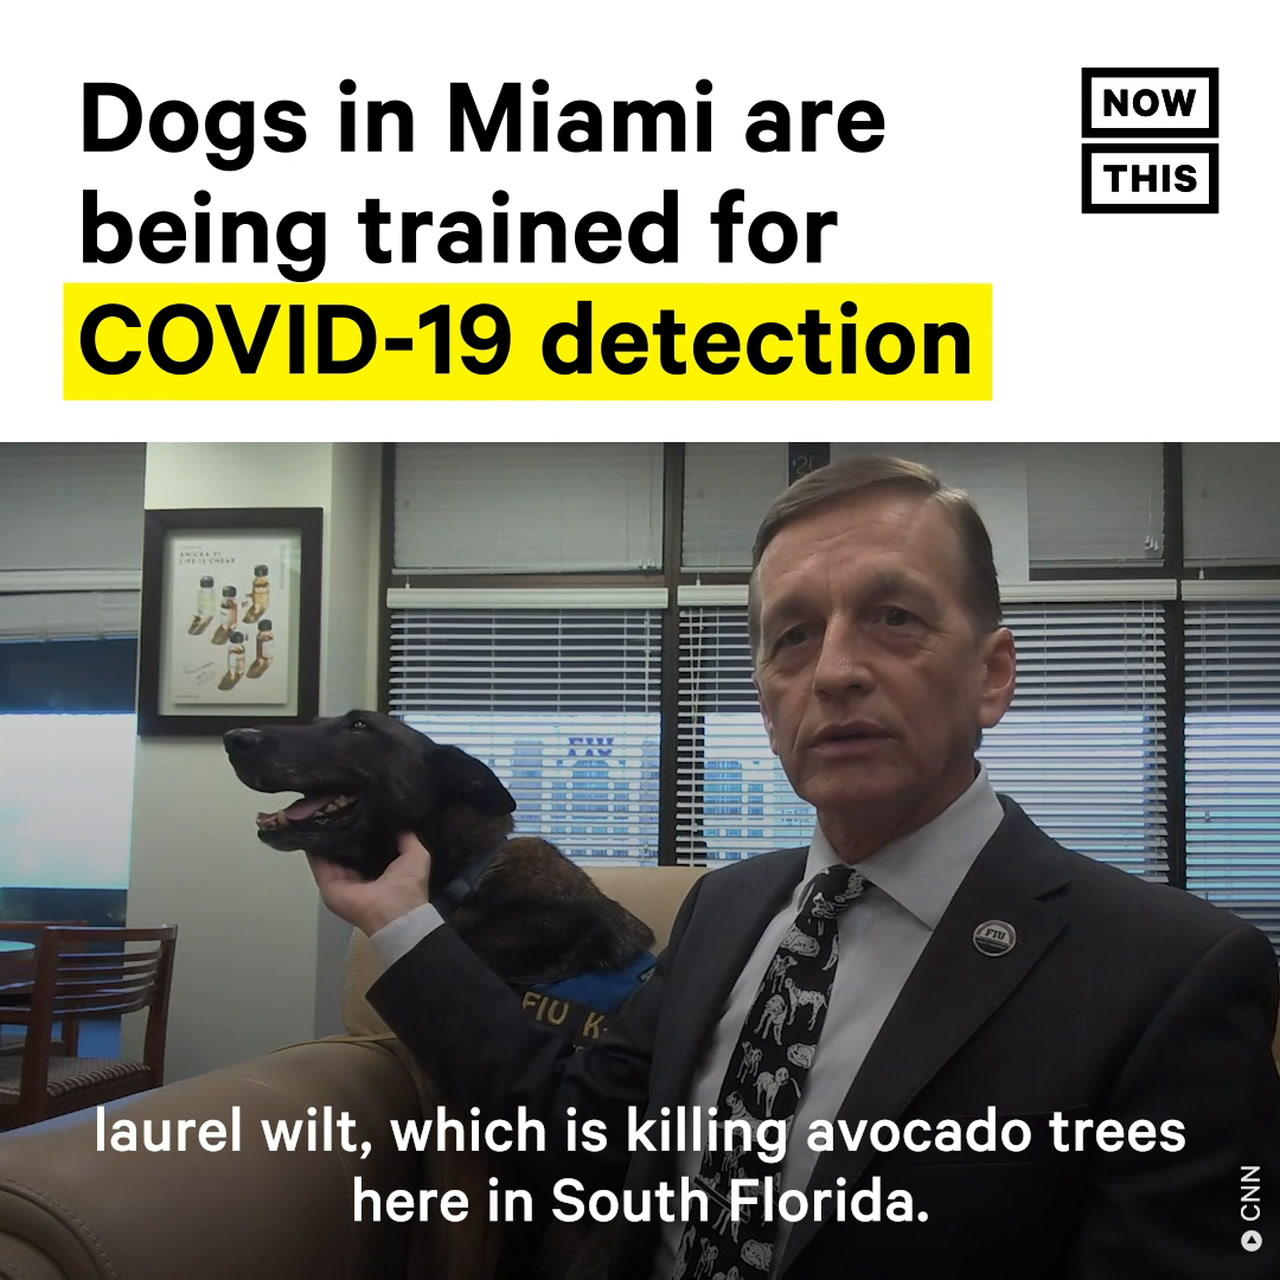 Dogs in Miami are Being Trained to Detect COVID-19